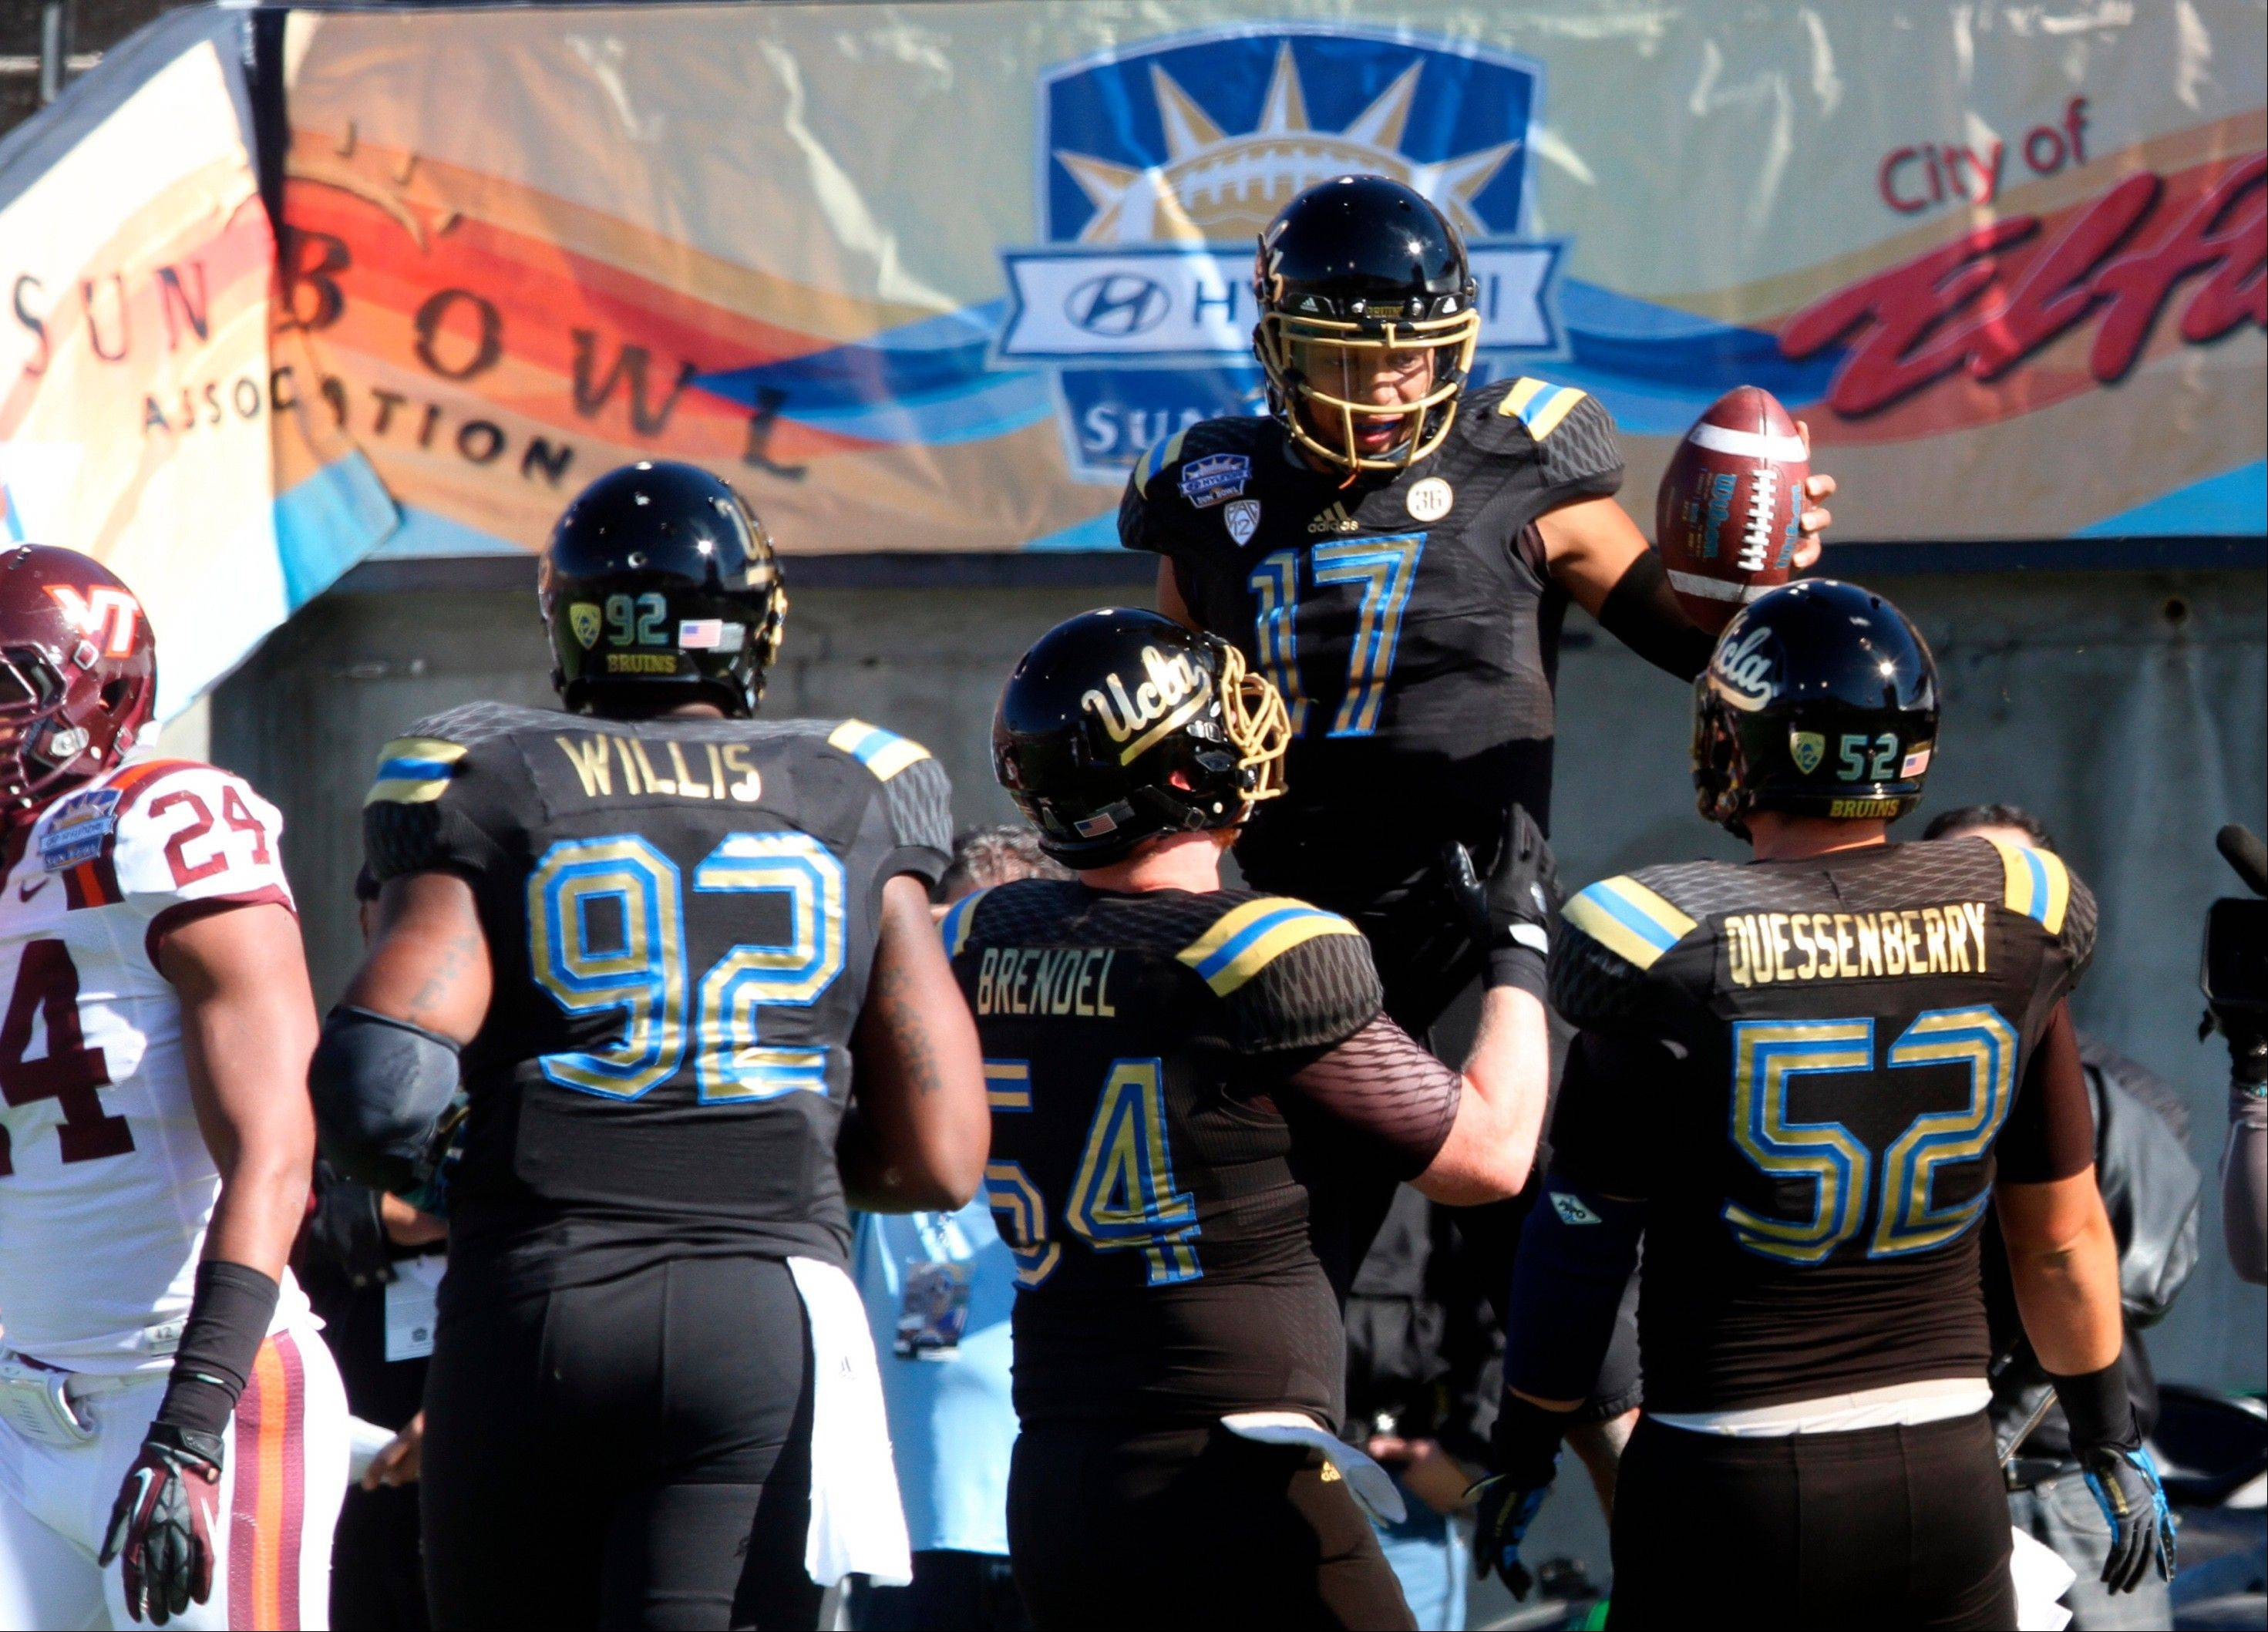 UCLA quarterback Brett Hundley (17) celebrates with teammates after a first-quarter touchdown against Virginia Tech in the Sun Bowl on Tuesday in El Paso, Texas.